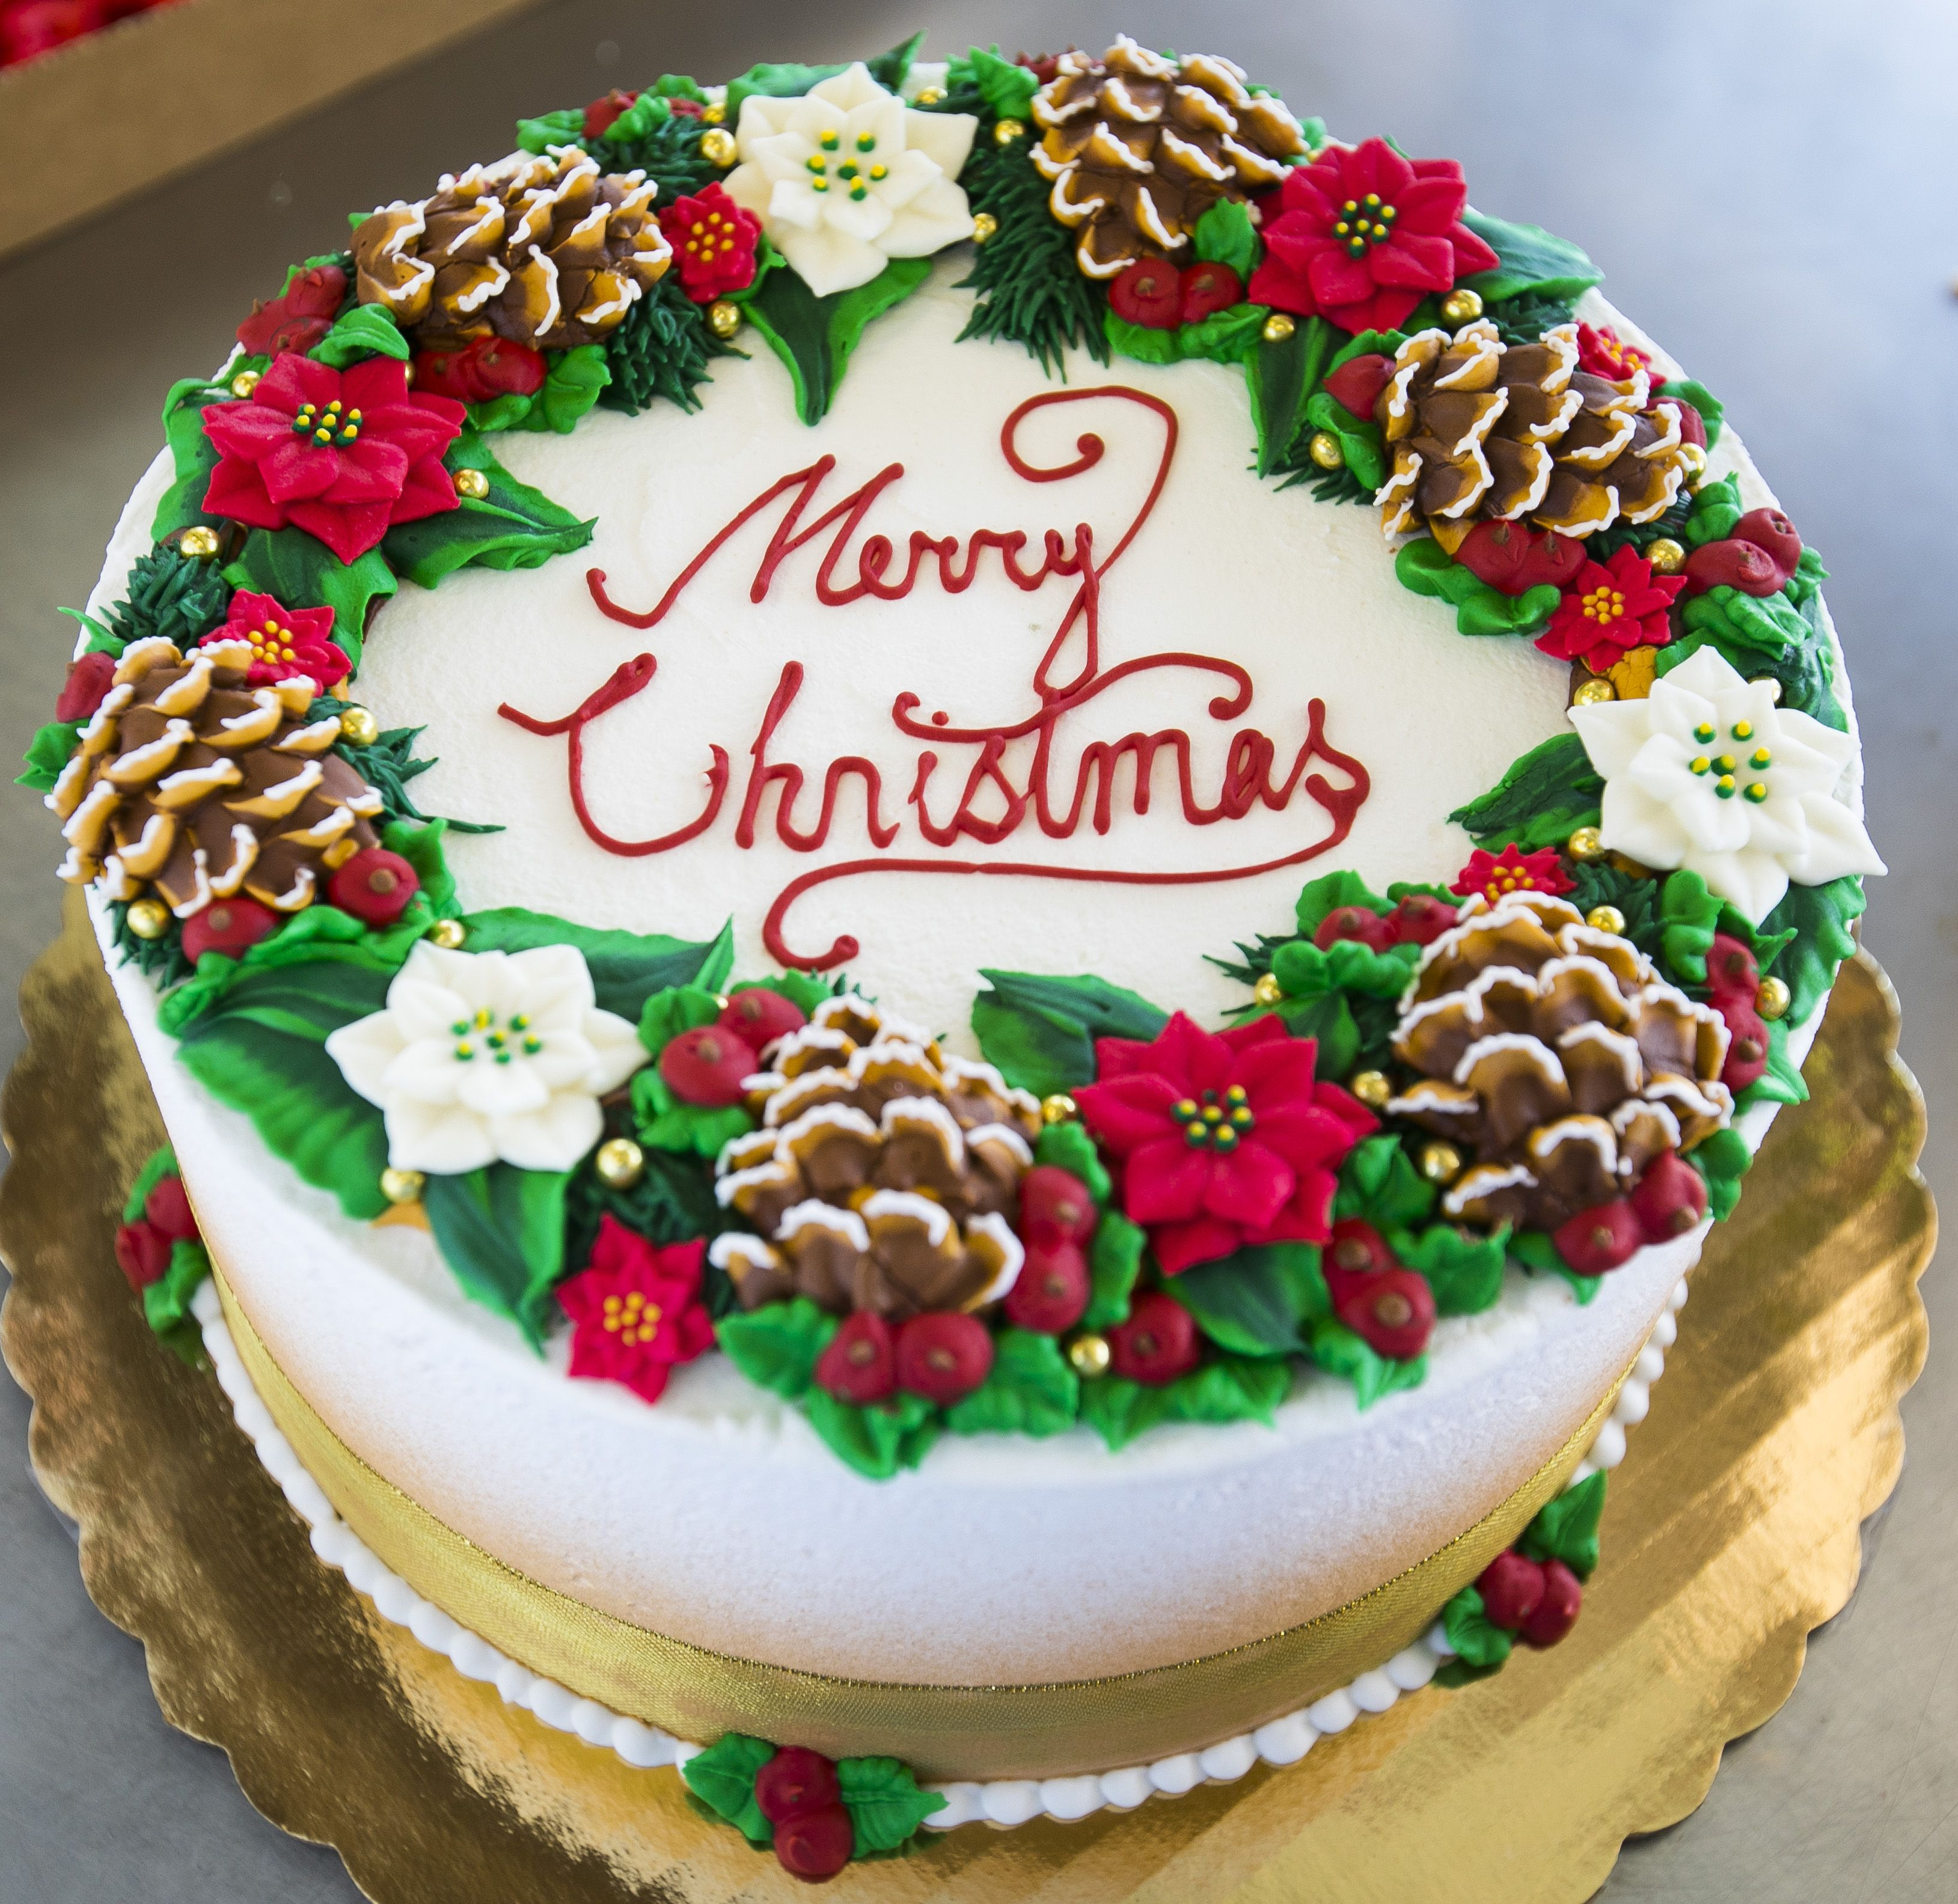 Bakery Cakes Christmas And Holiday Cakes Christmas Cake